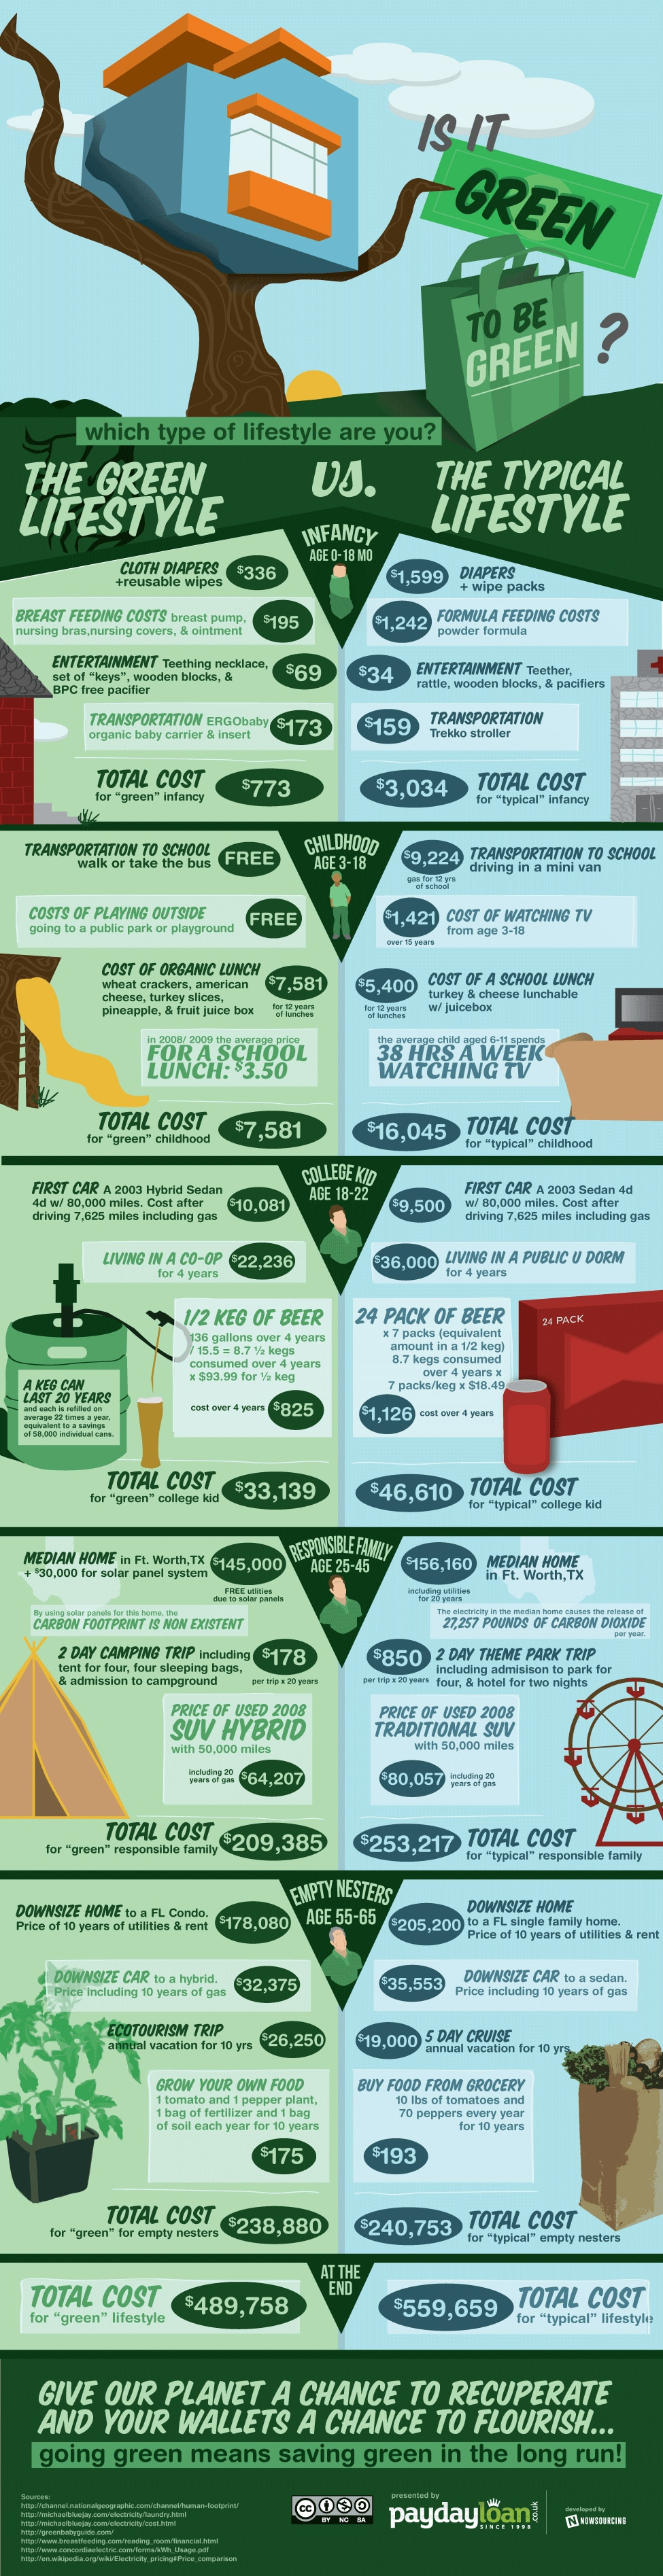 Green-Lifestyle-Comparison-Infographic